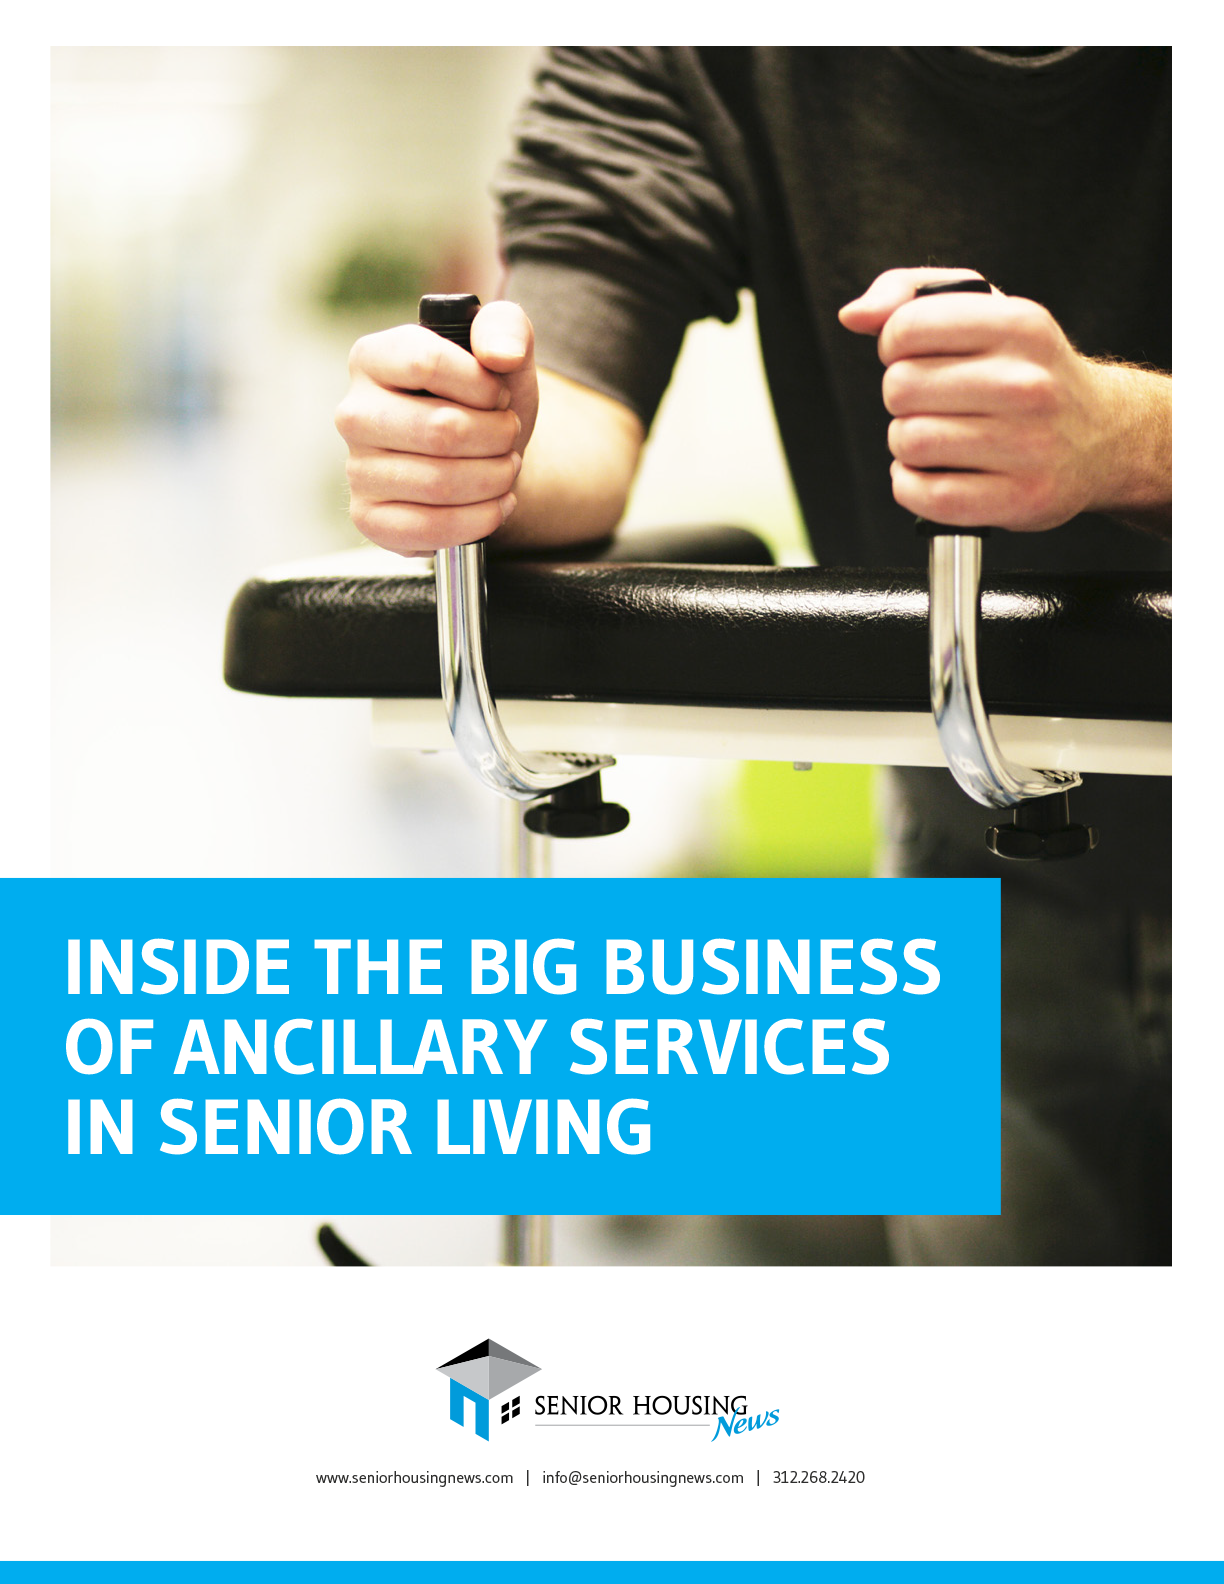 Inside the Big Business of Ancillary Services in Senior Living